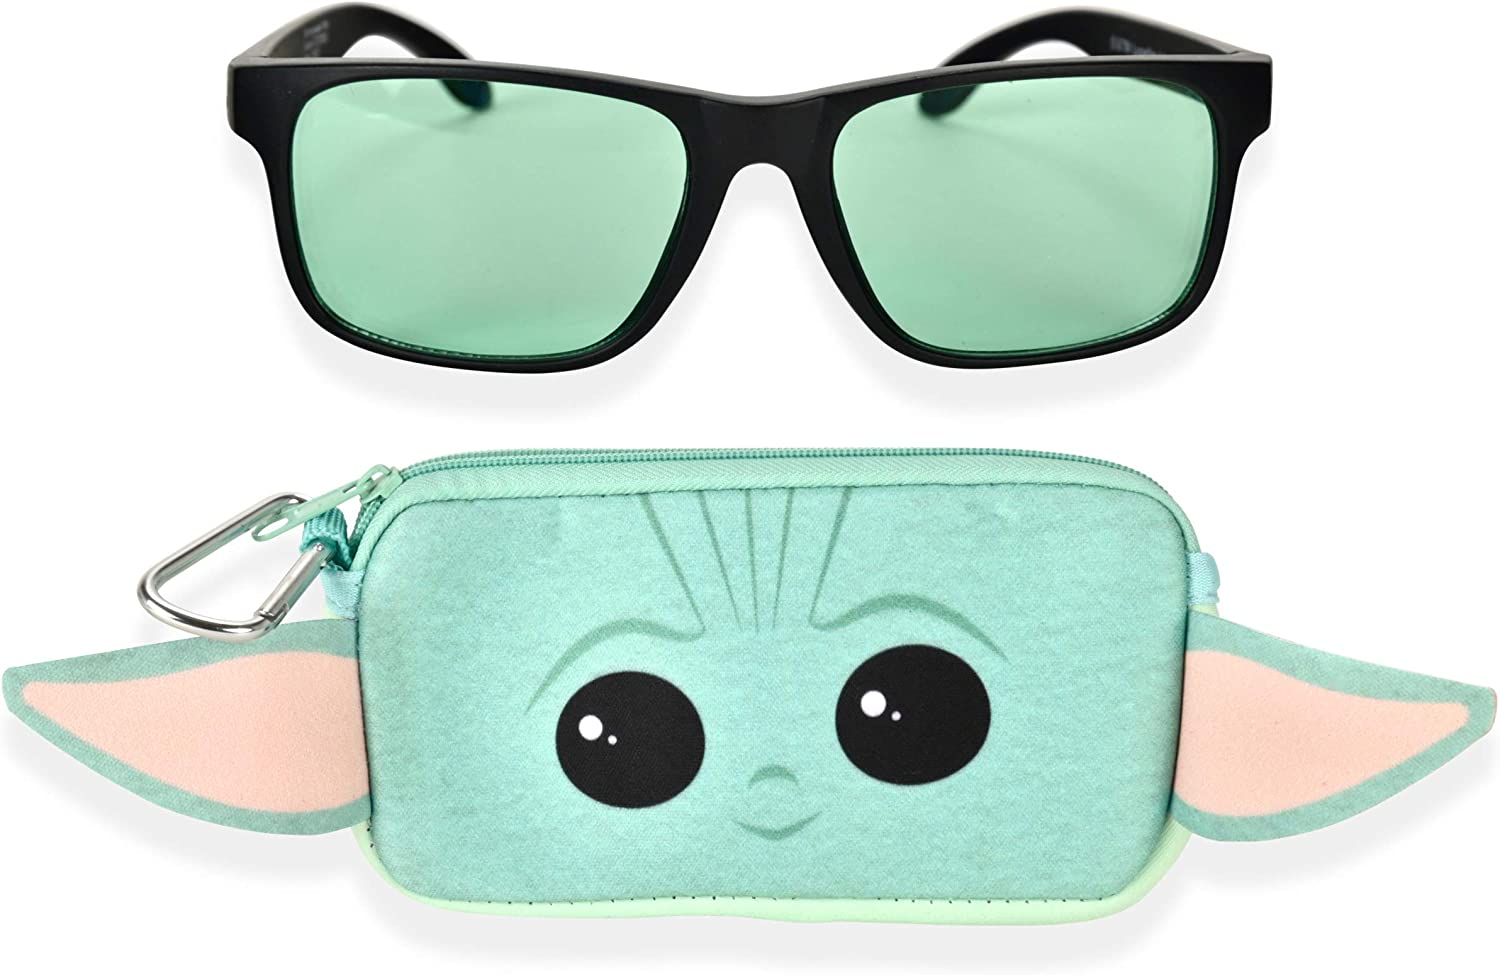 Star Discount mail order Wars Mandalorian Baby Yoda Boys Courier shipping free Glasse Sunglasses Kids with